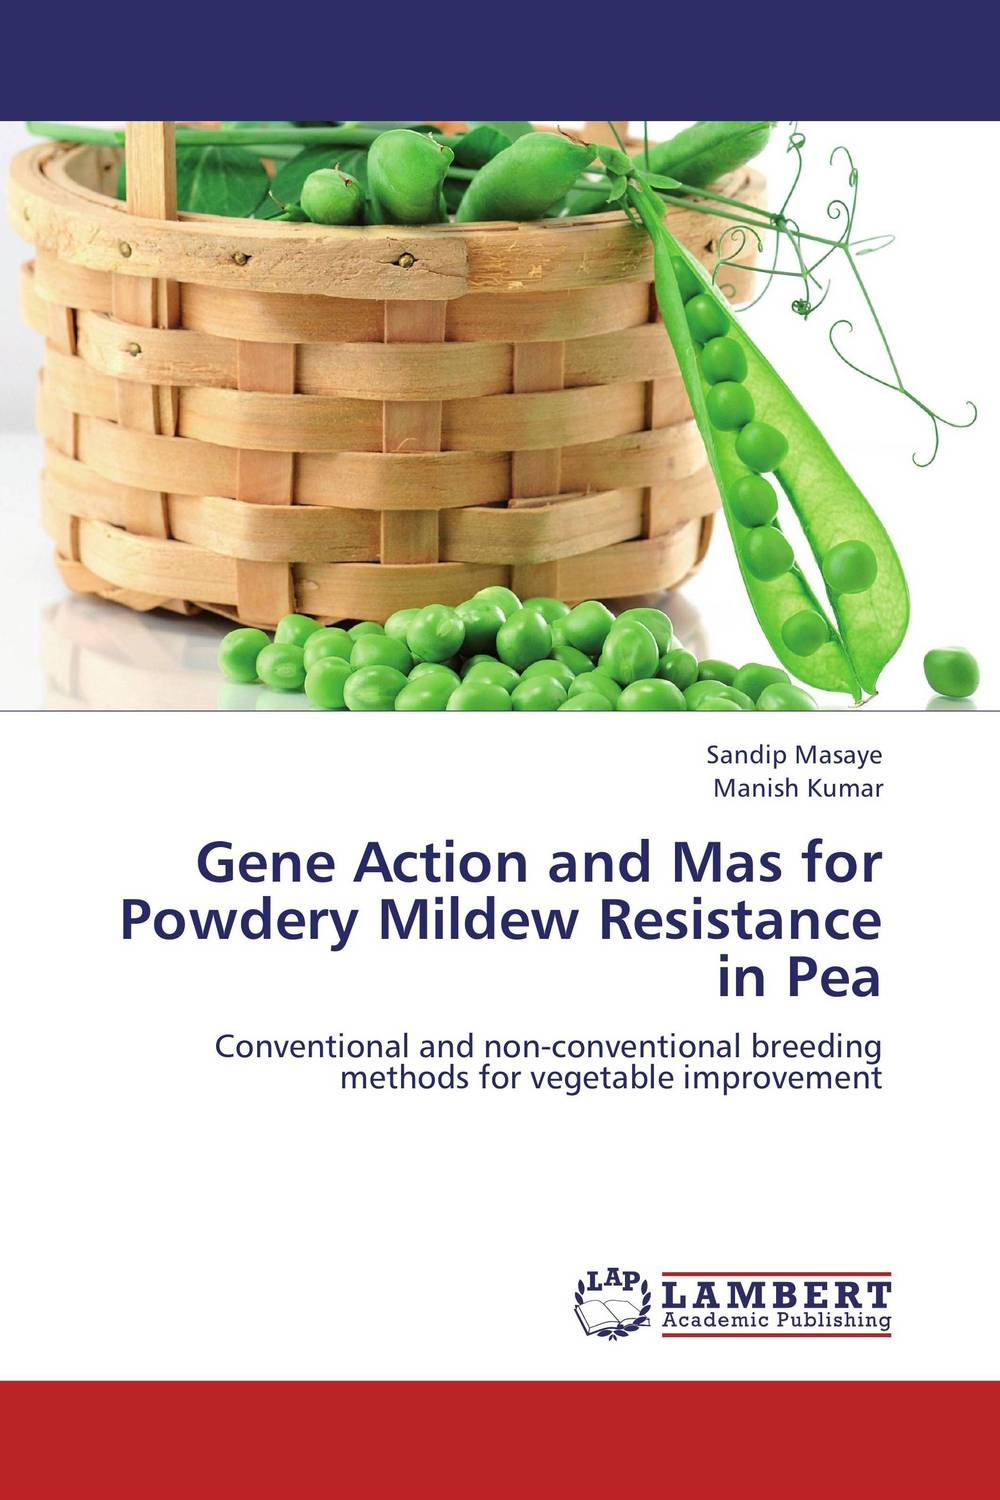 Gene Action and Mas for Powdery Mildew Resistance in Pea mf2300 f2